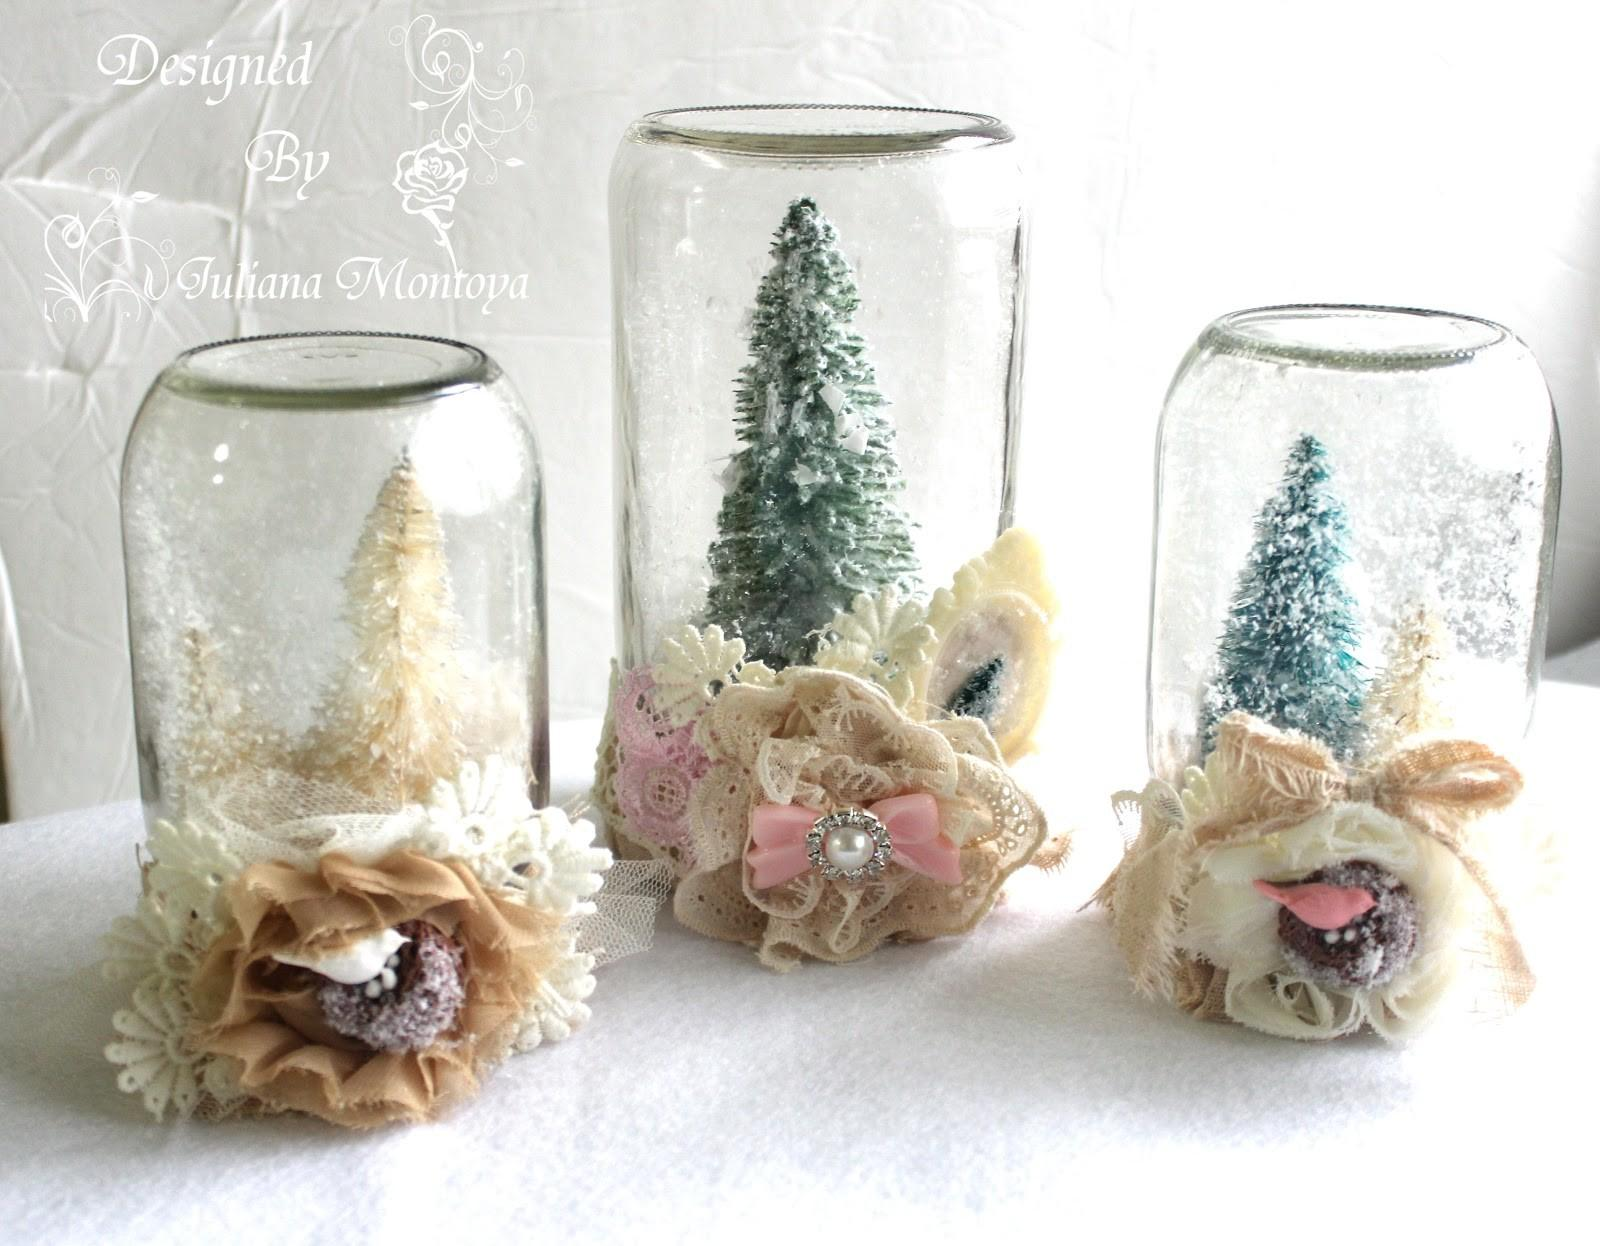 Shabbychicjcouture Shabby Chic Waterless Christmas Snow